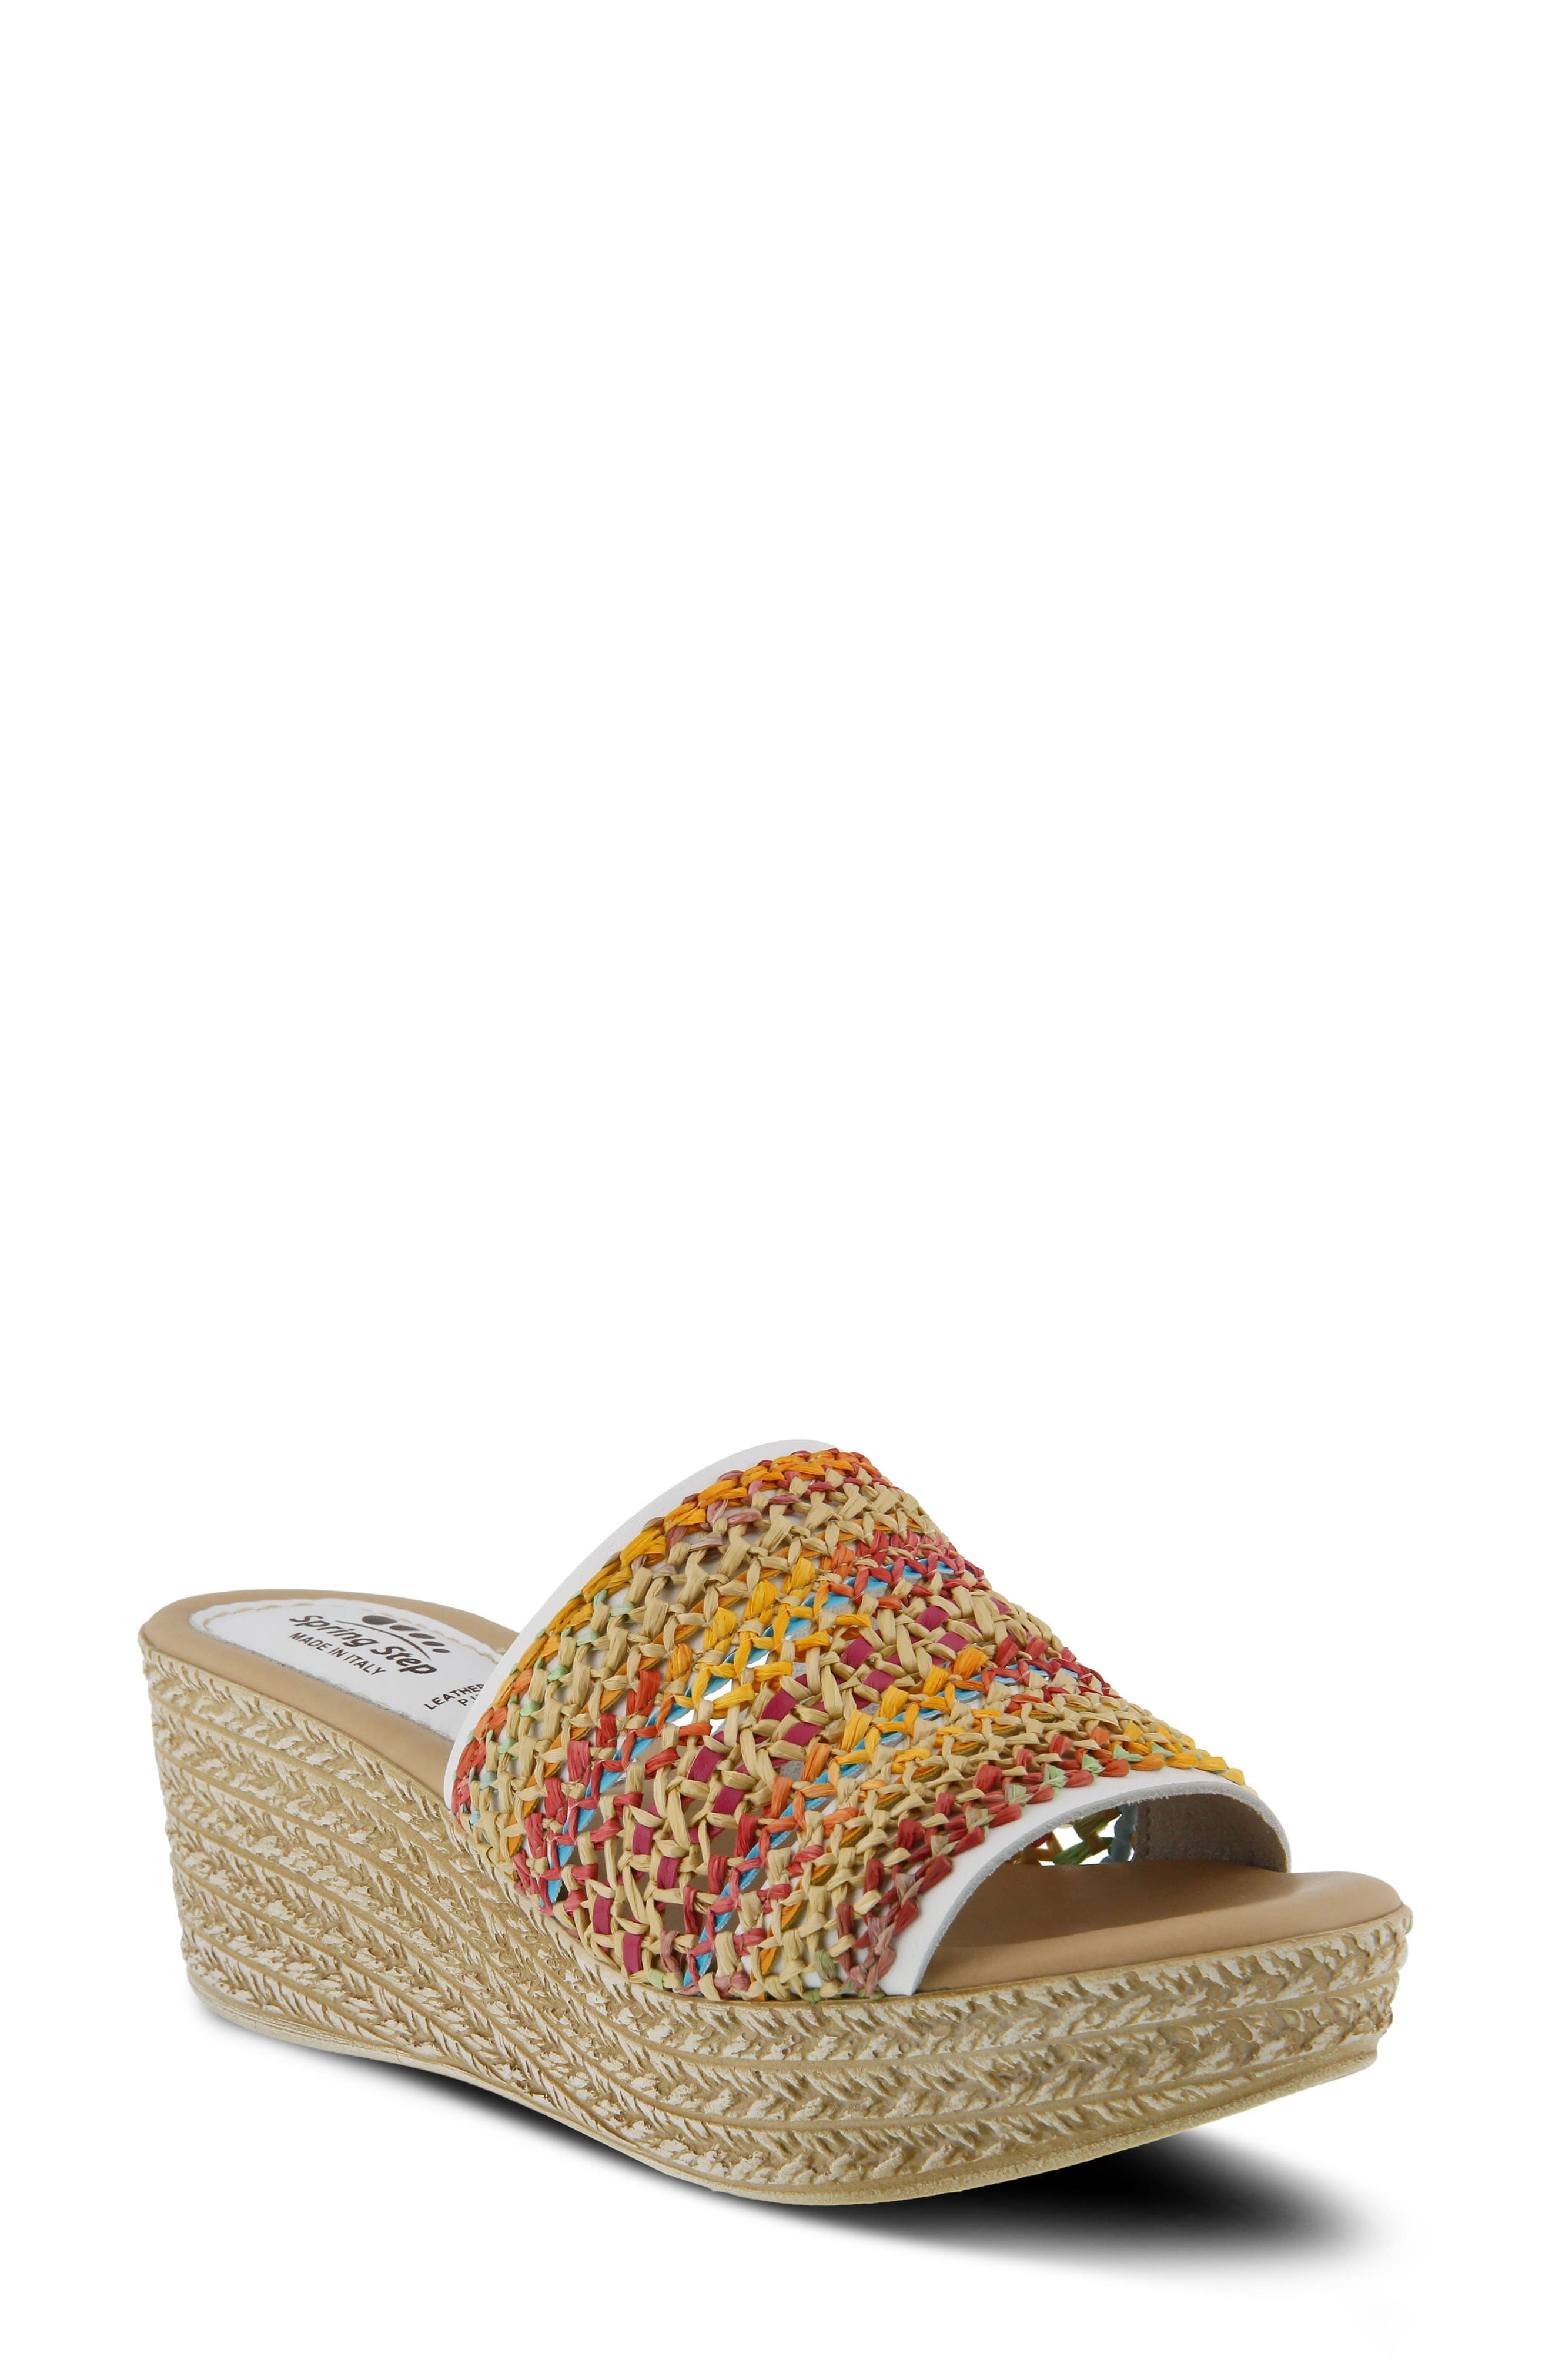 Calci Espadrille Wedge Sandal,                         Main,                         color, White Leather